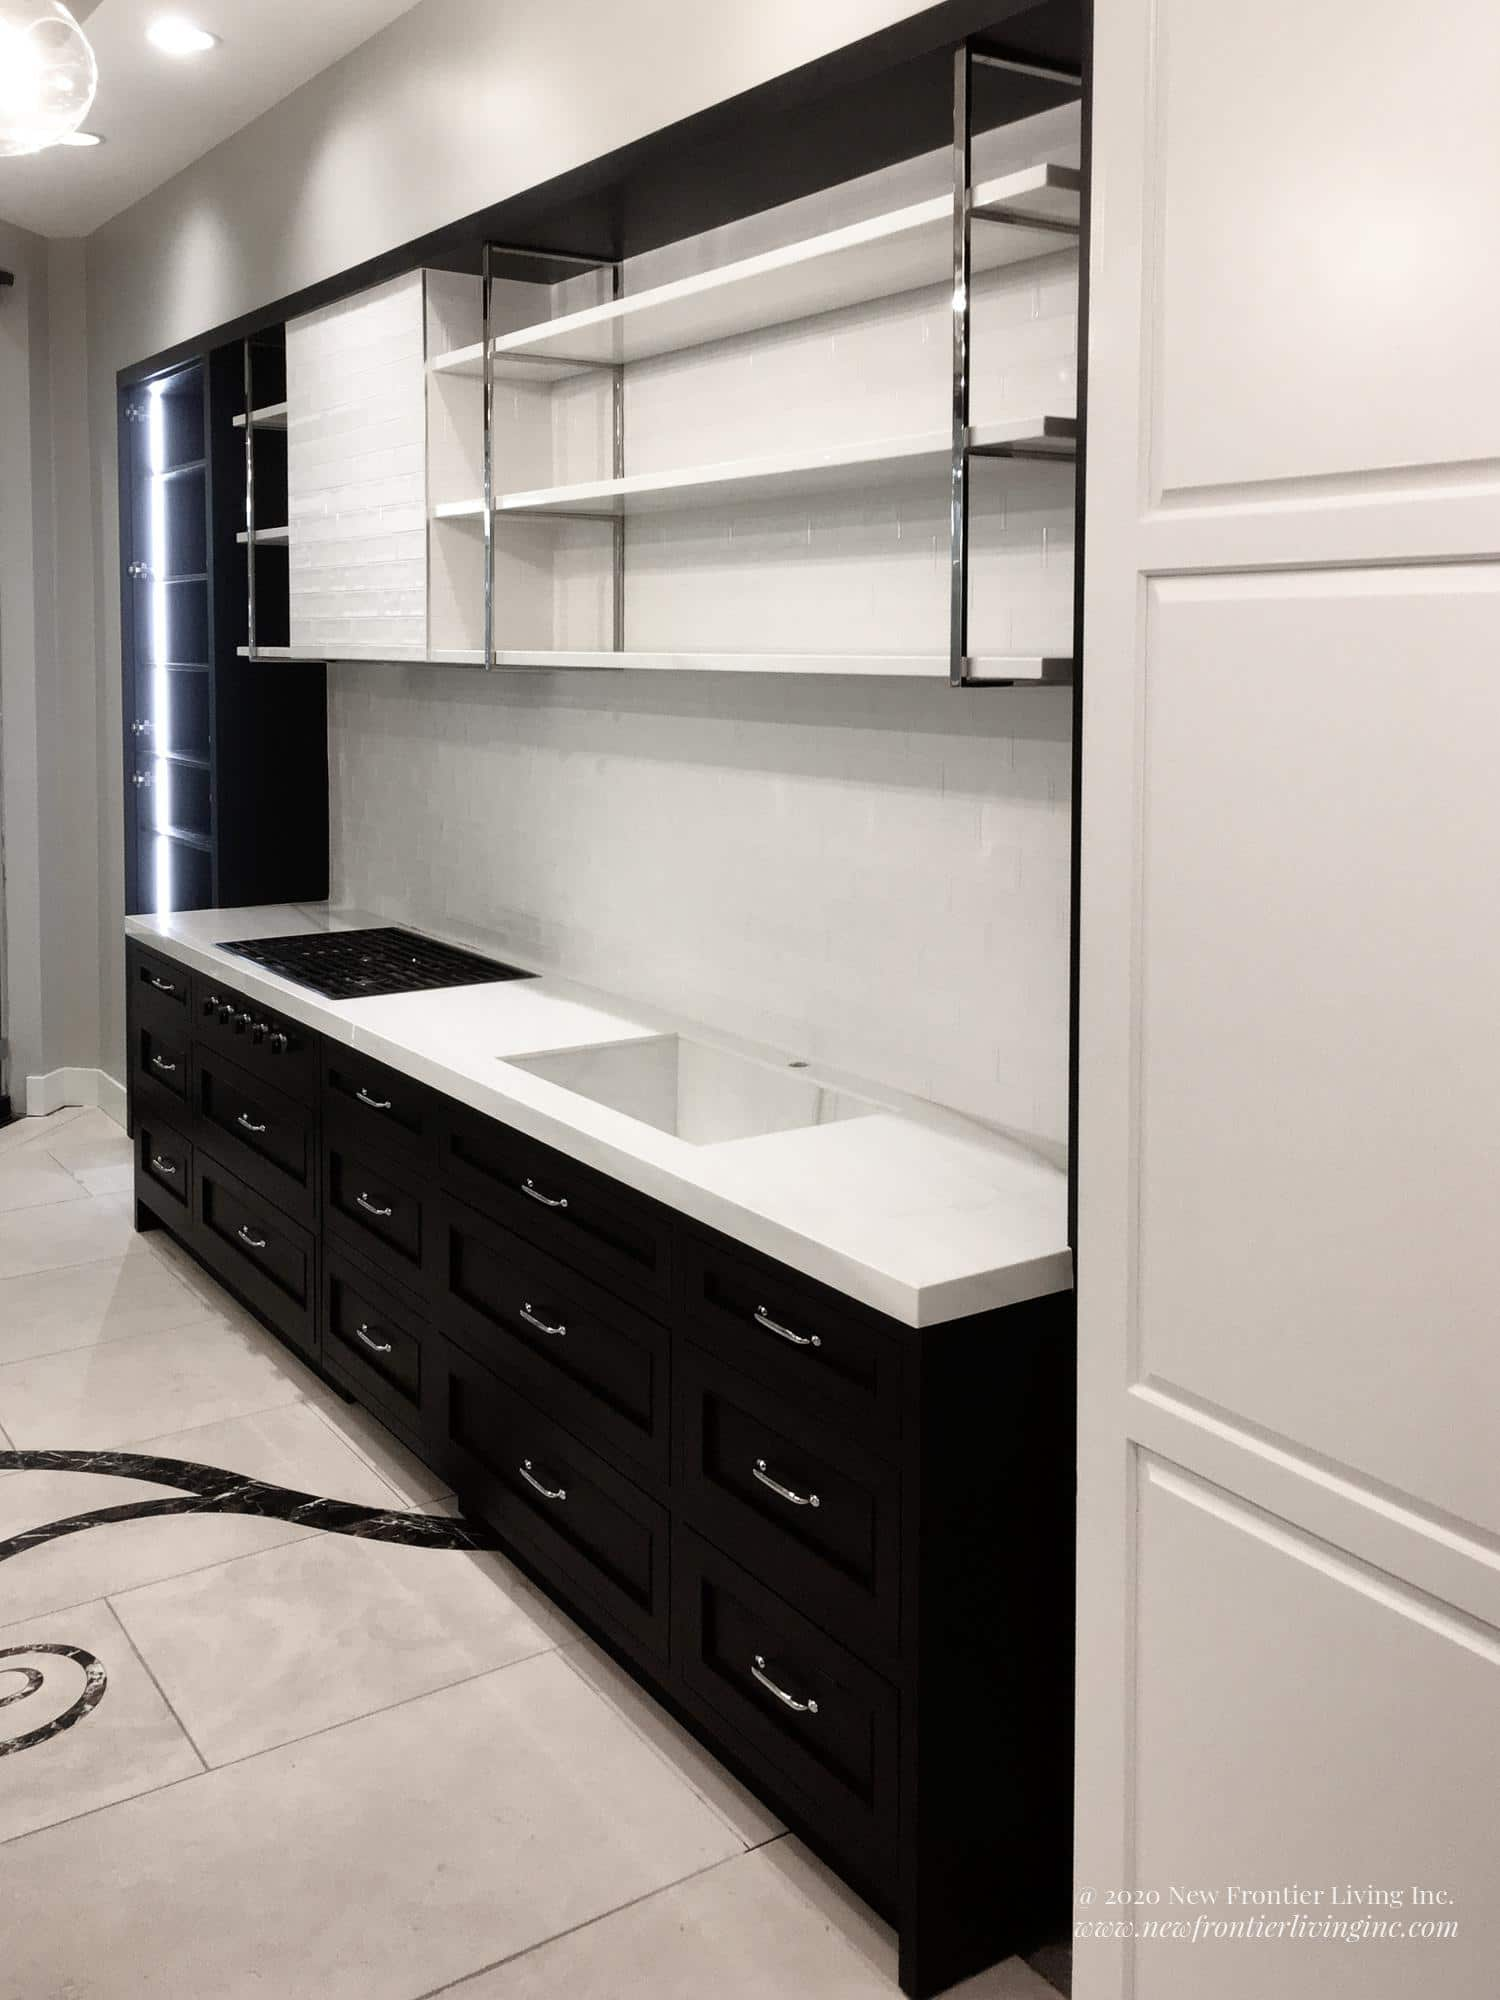 Black kitchen cabinets with silver handles and white countertop, white floor with black design